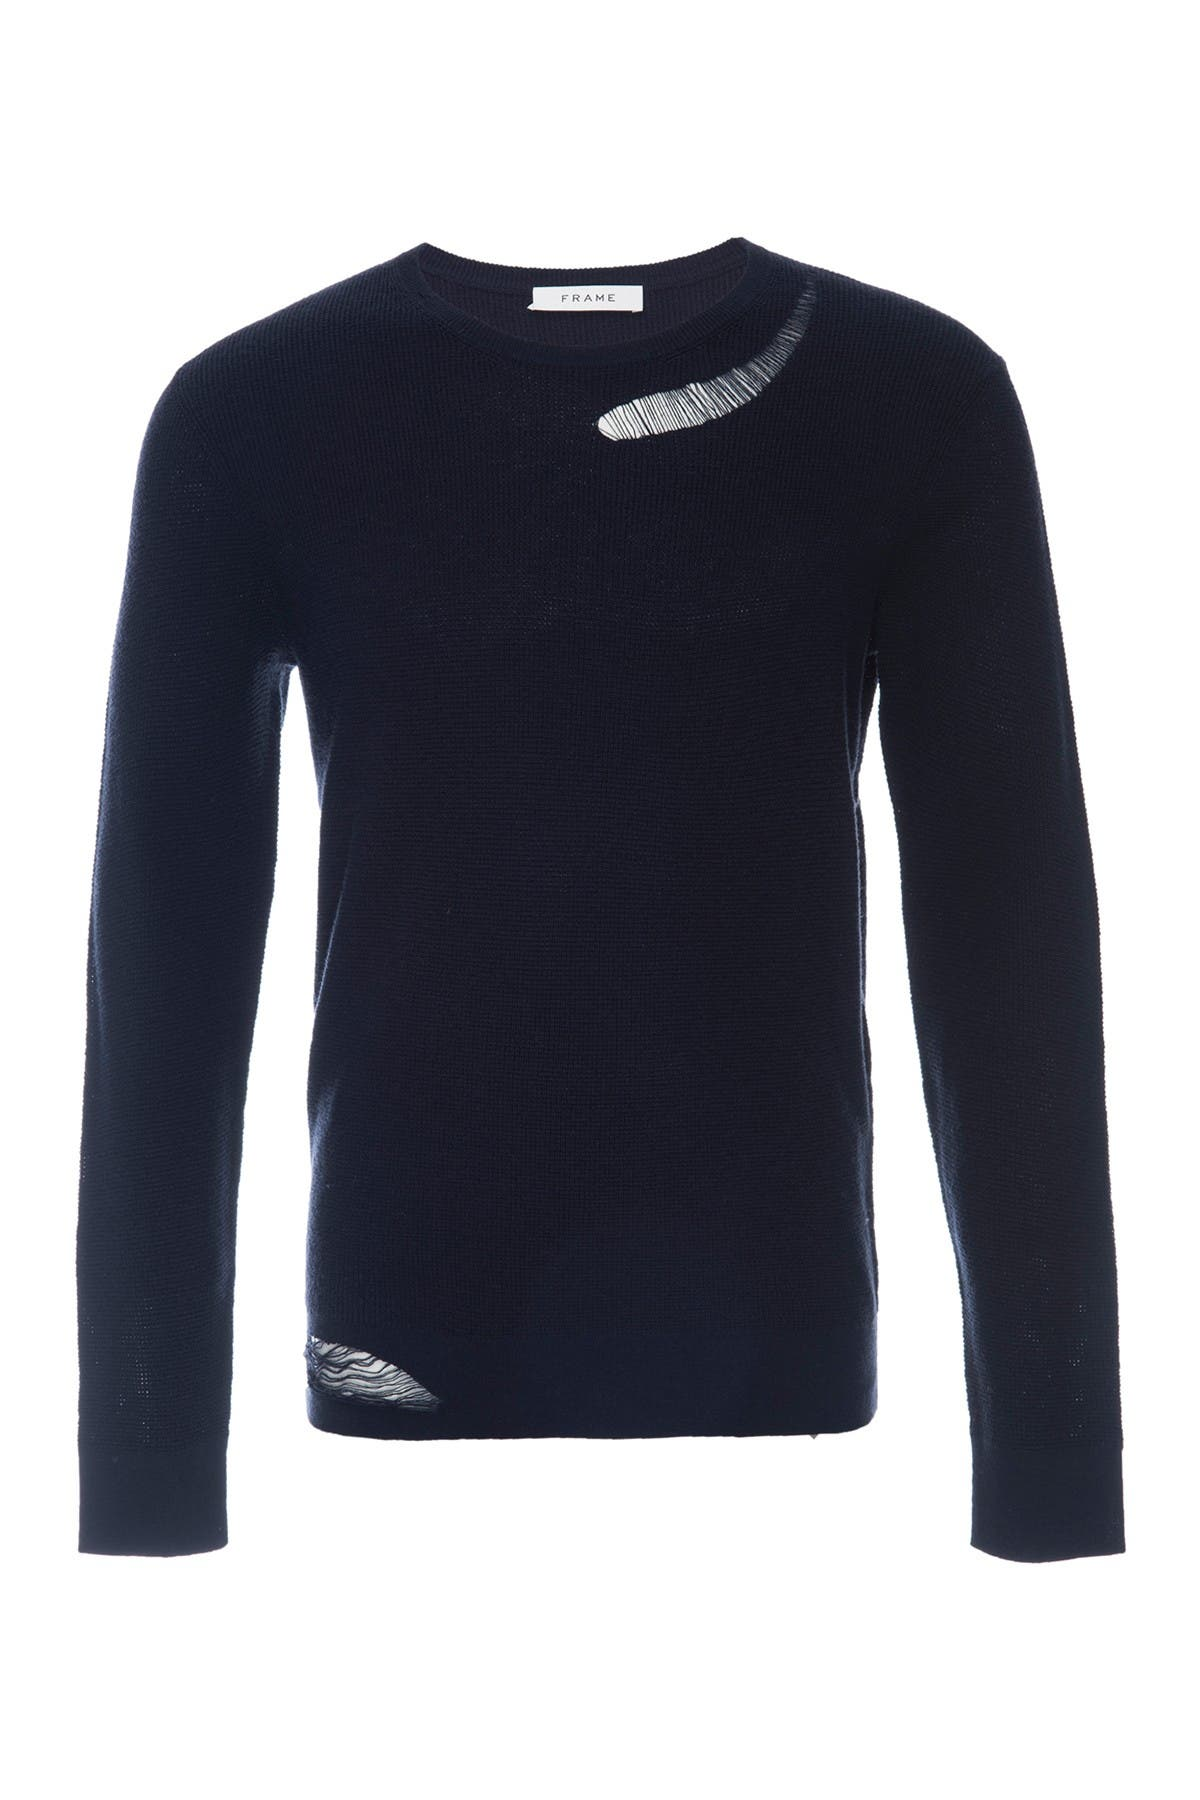 Image of FRAME Slim Fit Distressed Sweater